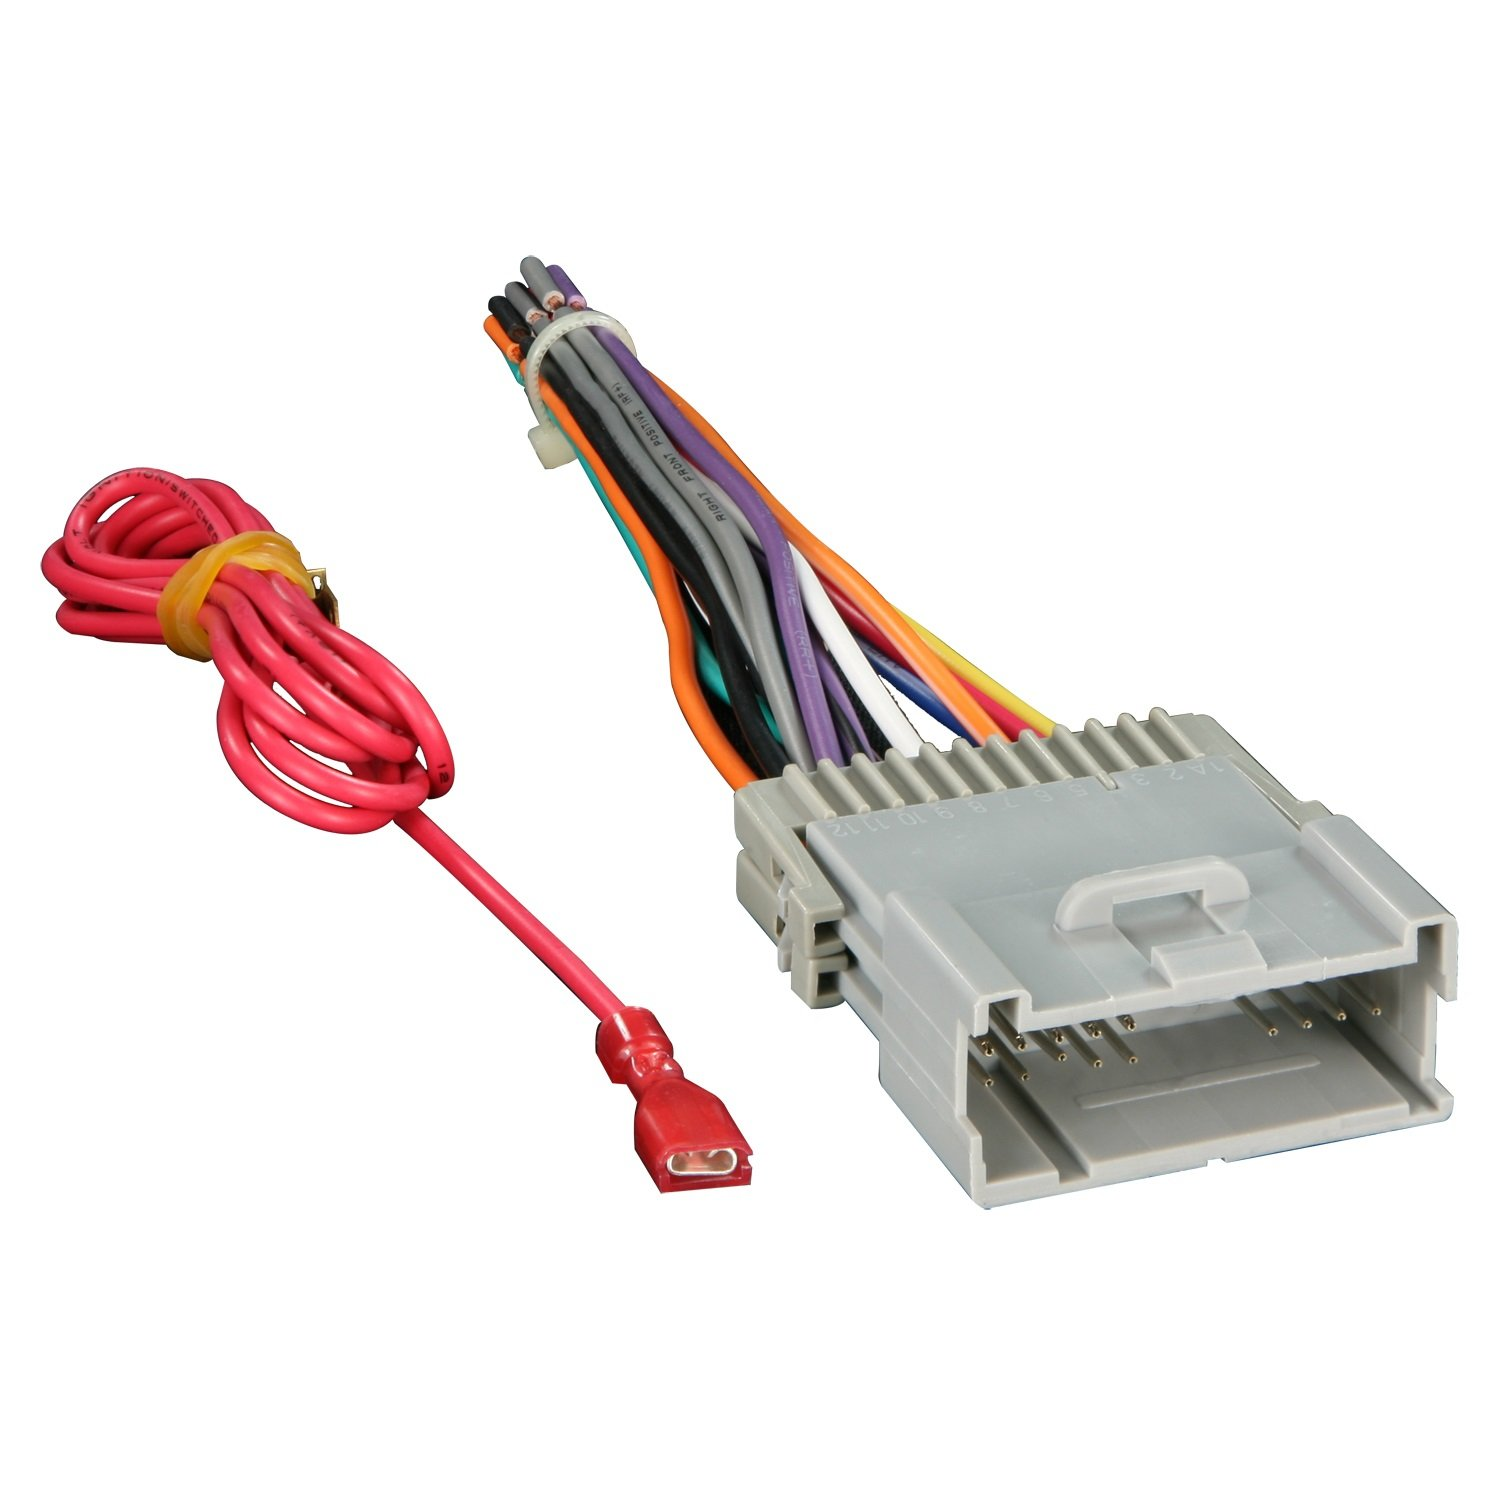 61eewxp9orL._SL1500_ amazon com metra 70 2003 radio wiring harness for gm 98 08 GM Wiring Color Codes at nearapp.co